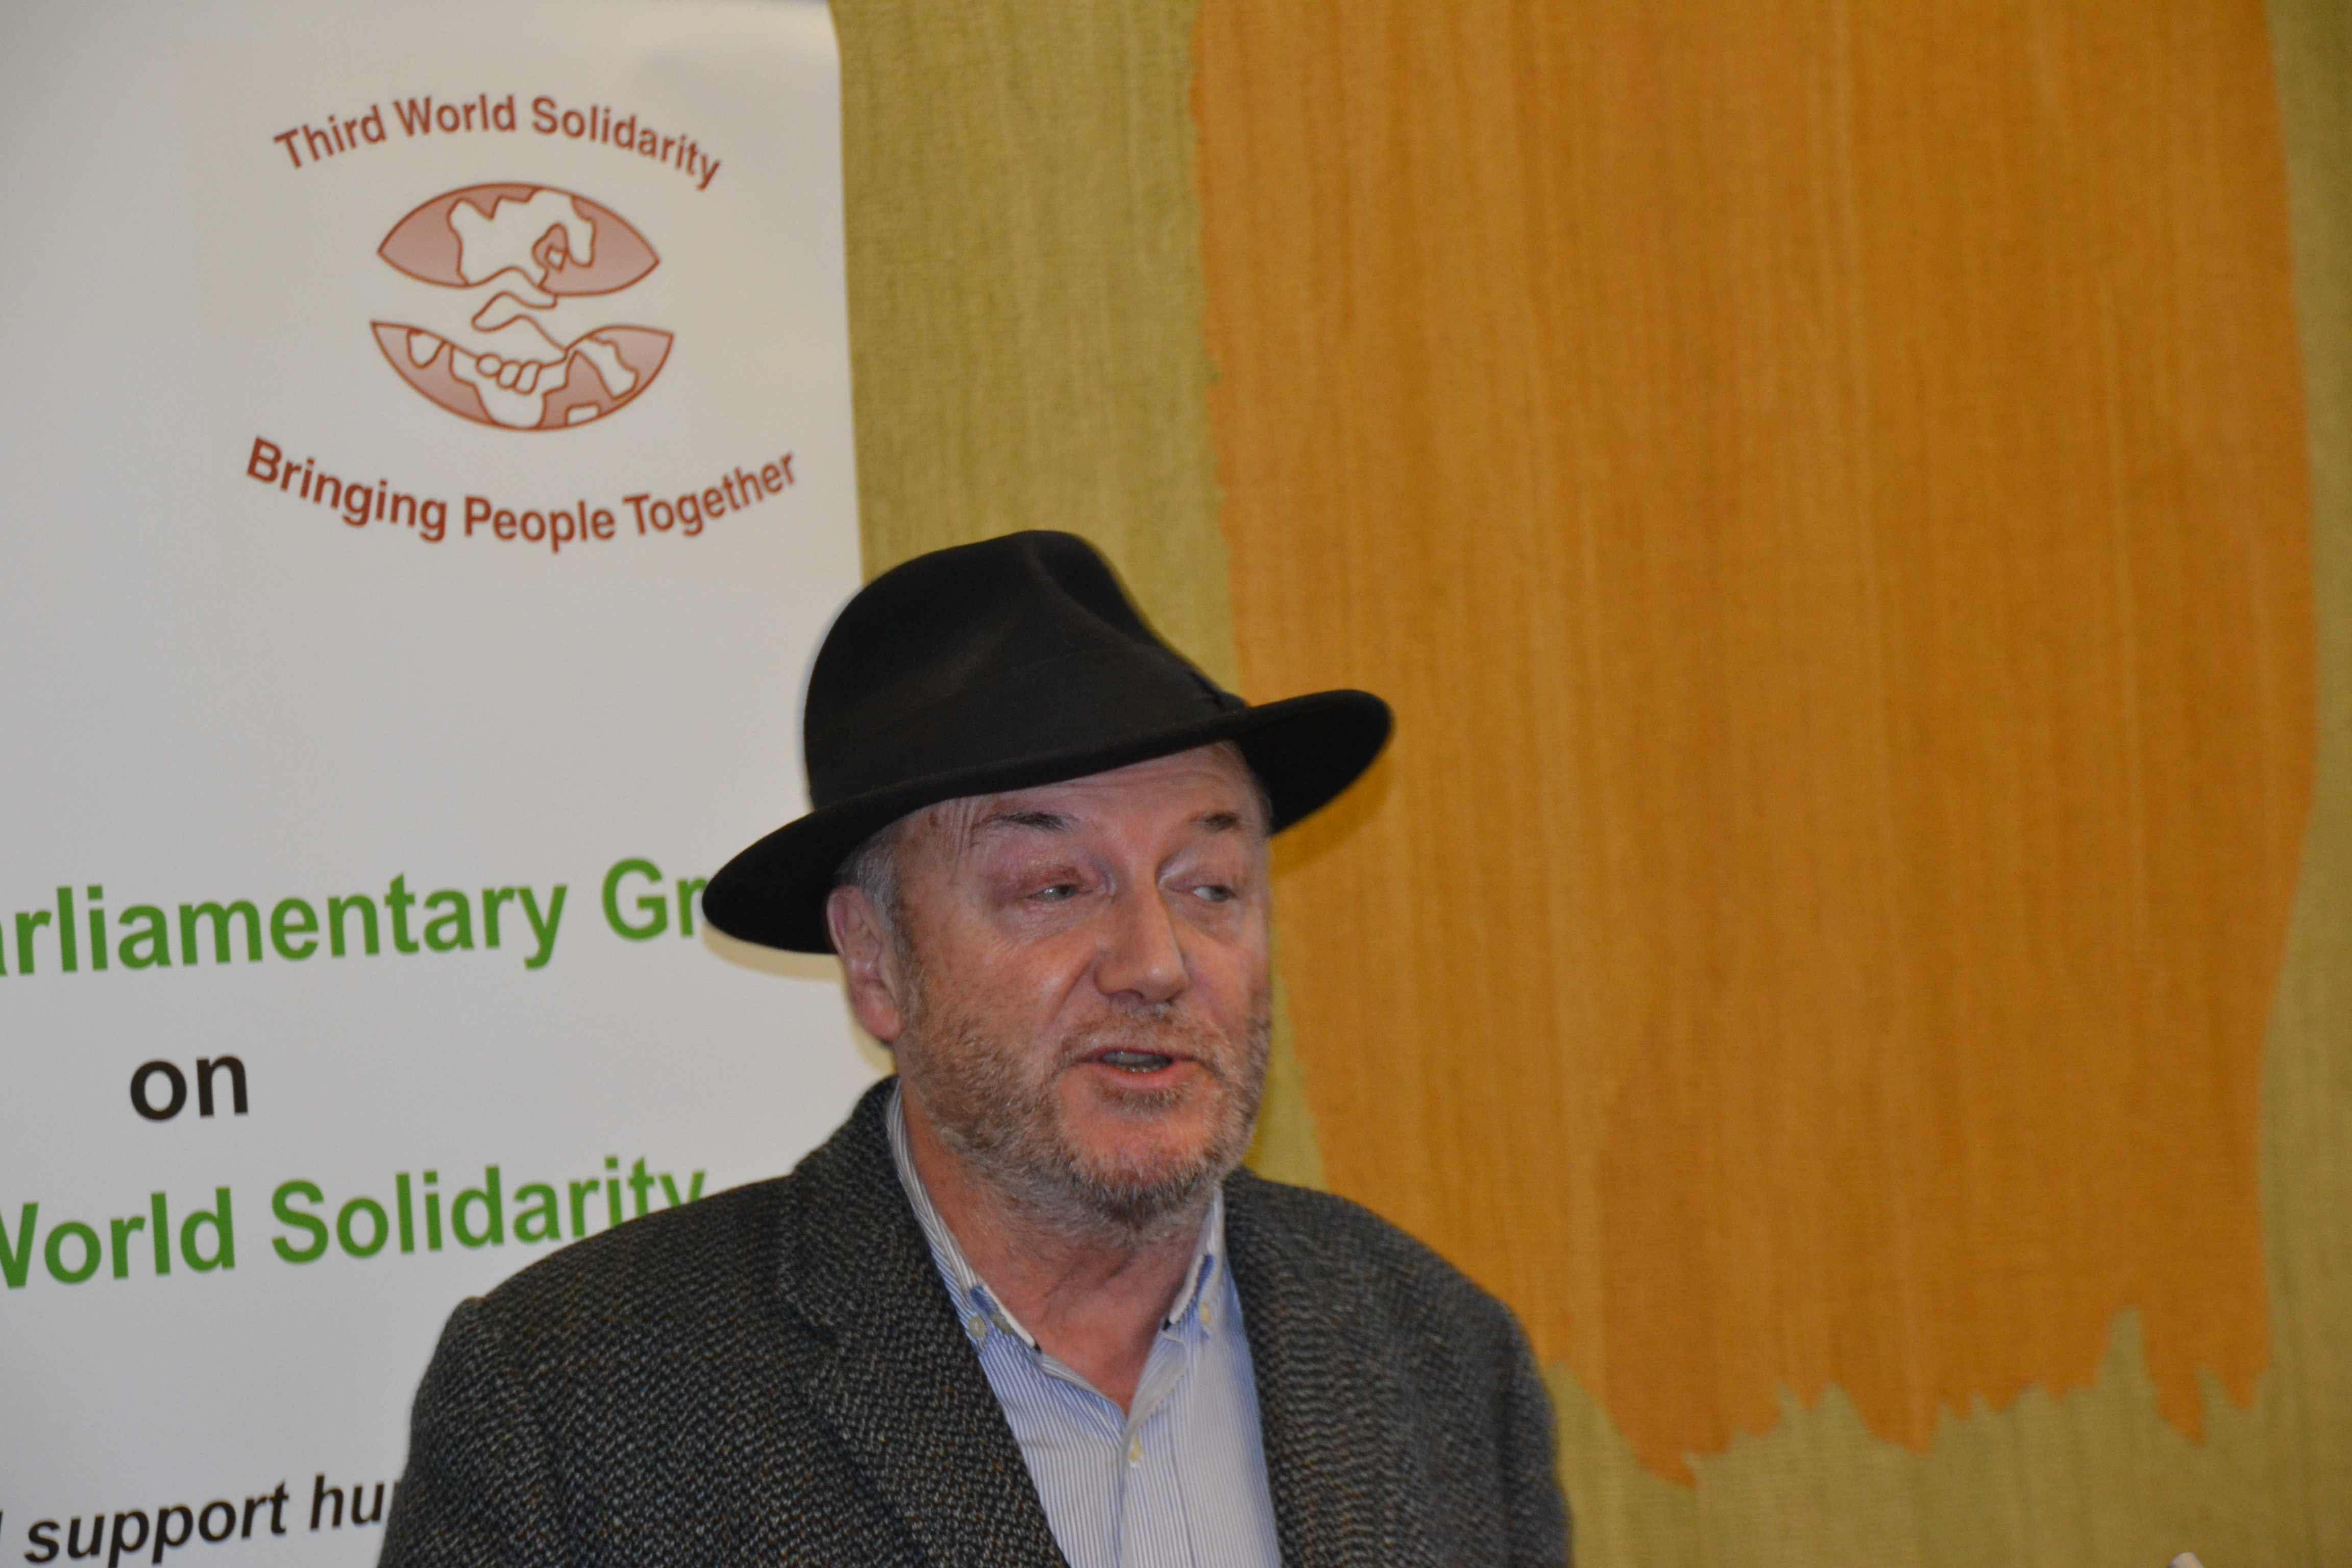 George Galloway (Chairman - Respect Party)